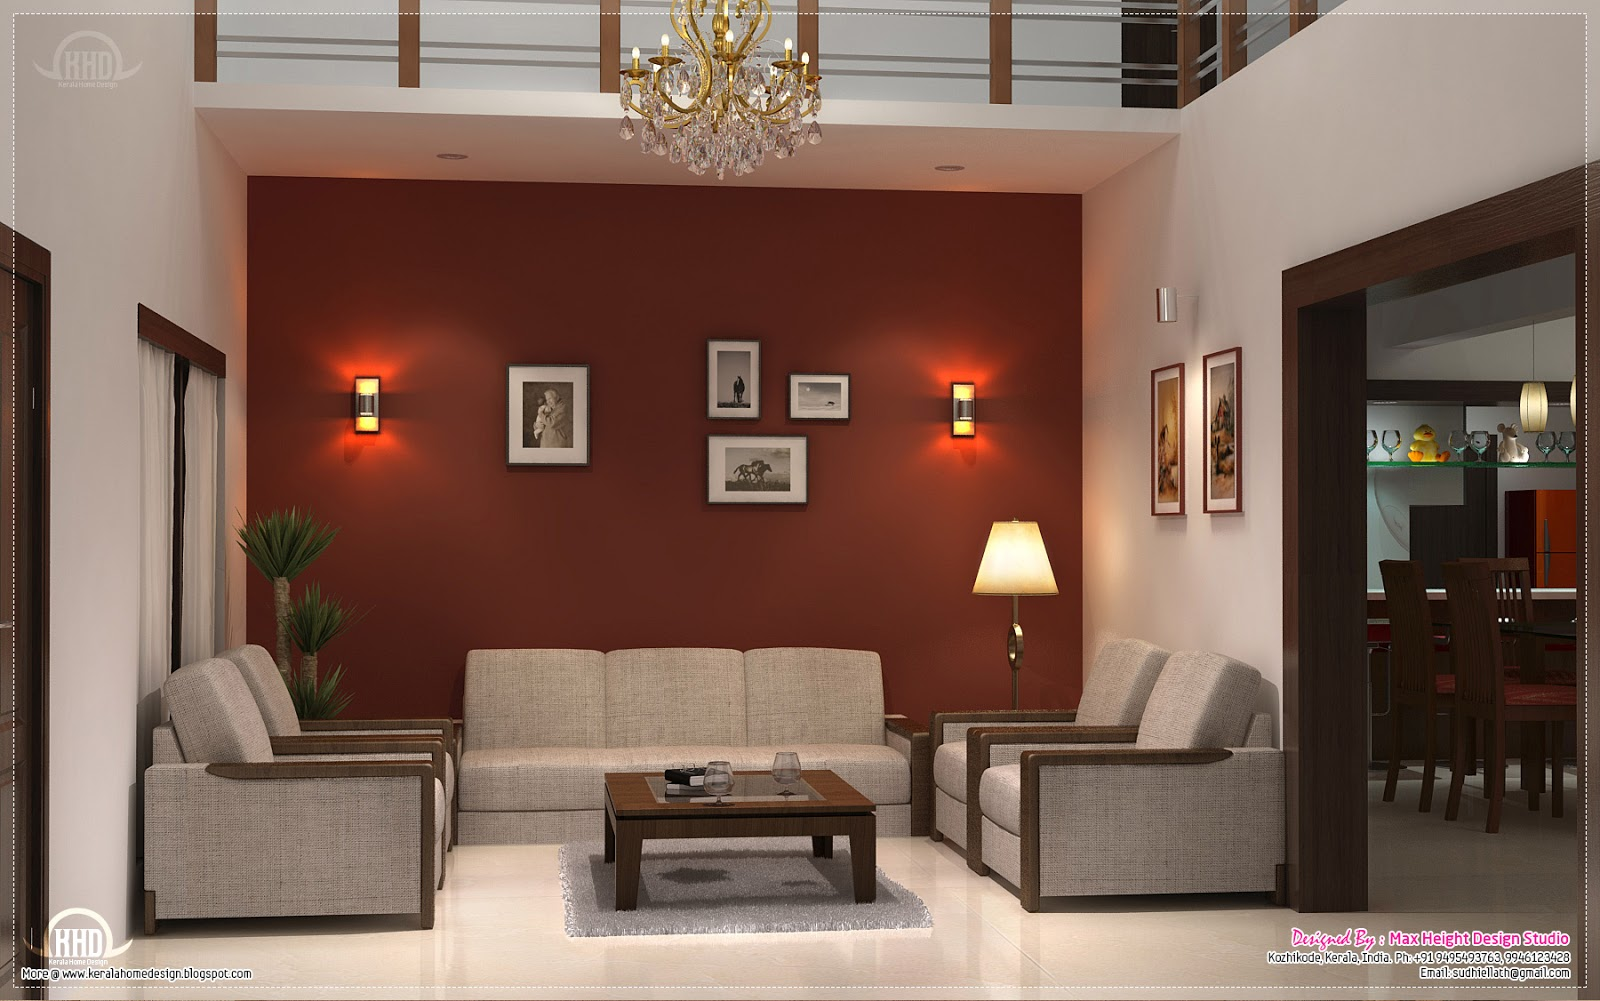 march 2013 kerala home design and floor plans. Black Bedroom Furniture Sets. Home Design Ideas